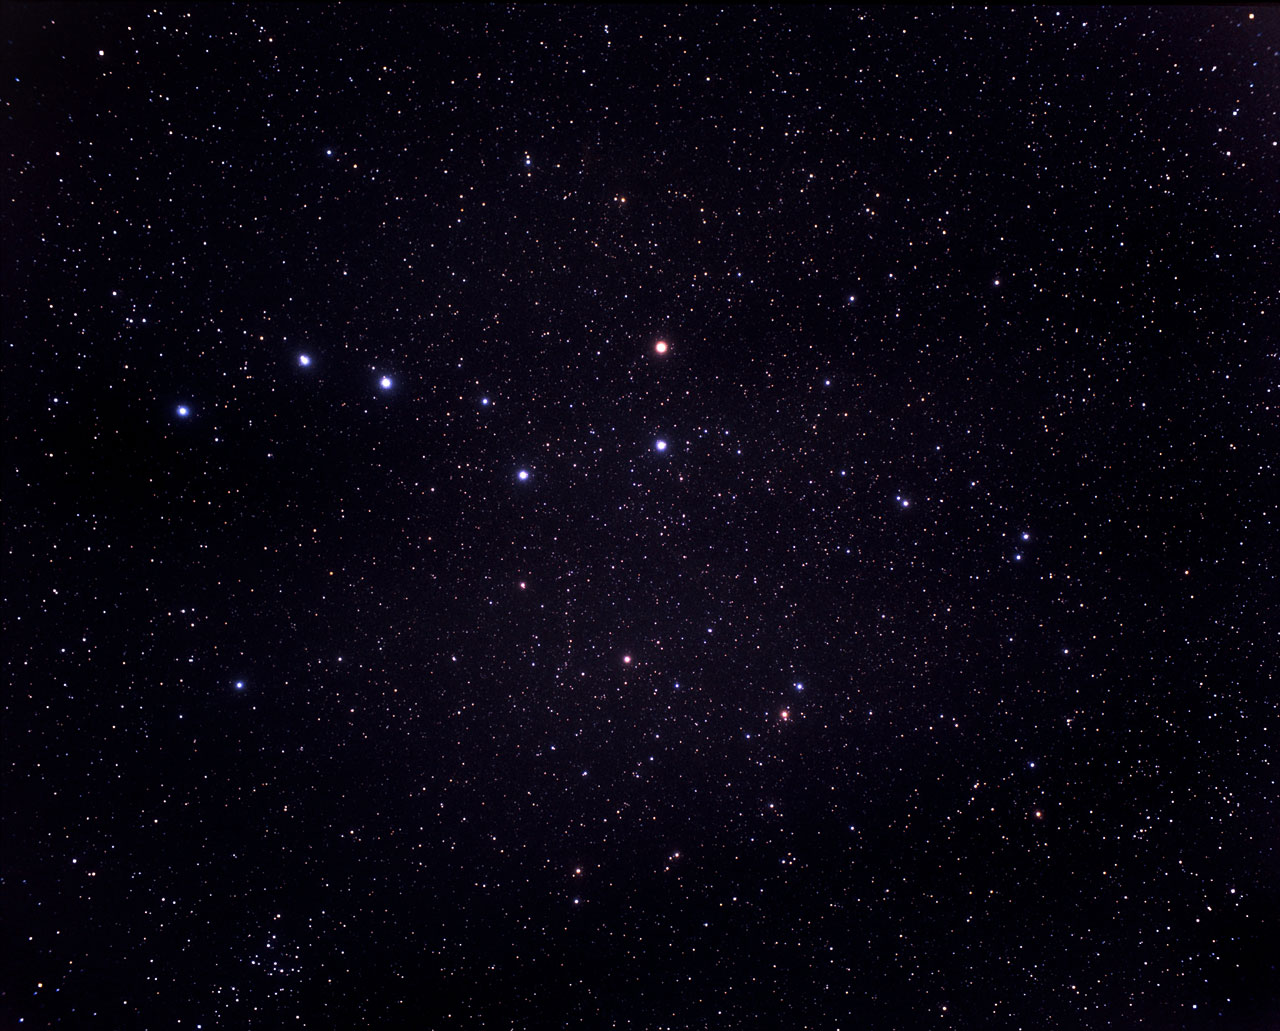 A Very Wide Field View Of The Constellations Of Ursa Major